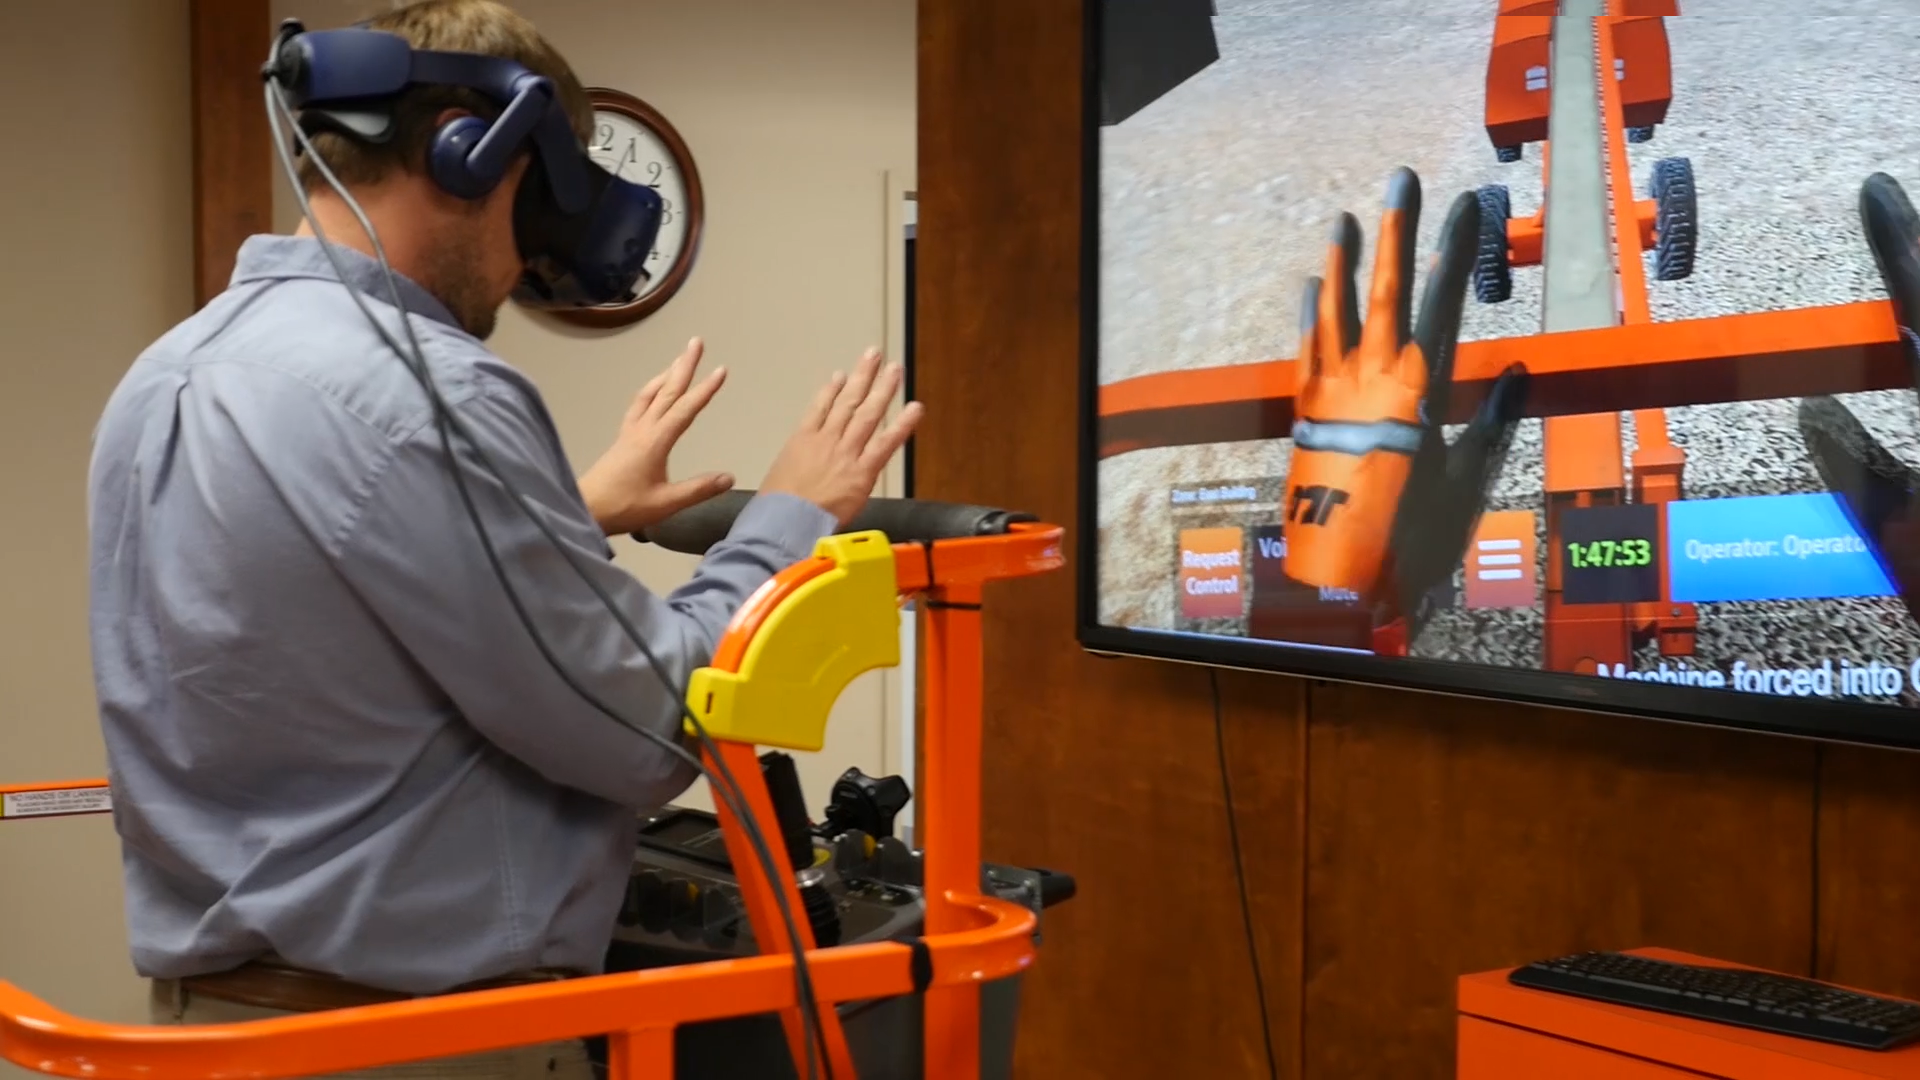 JLG Equipment Simulator by ForgeFX Includes Hand-Tracking